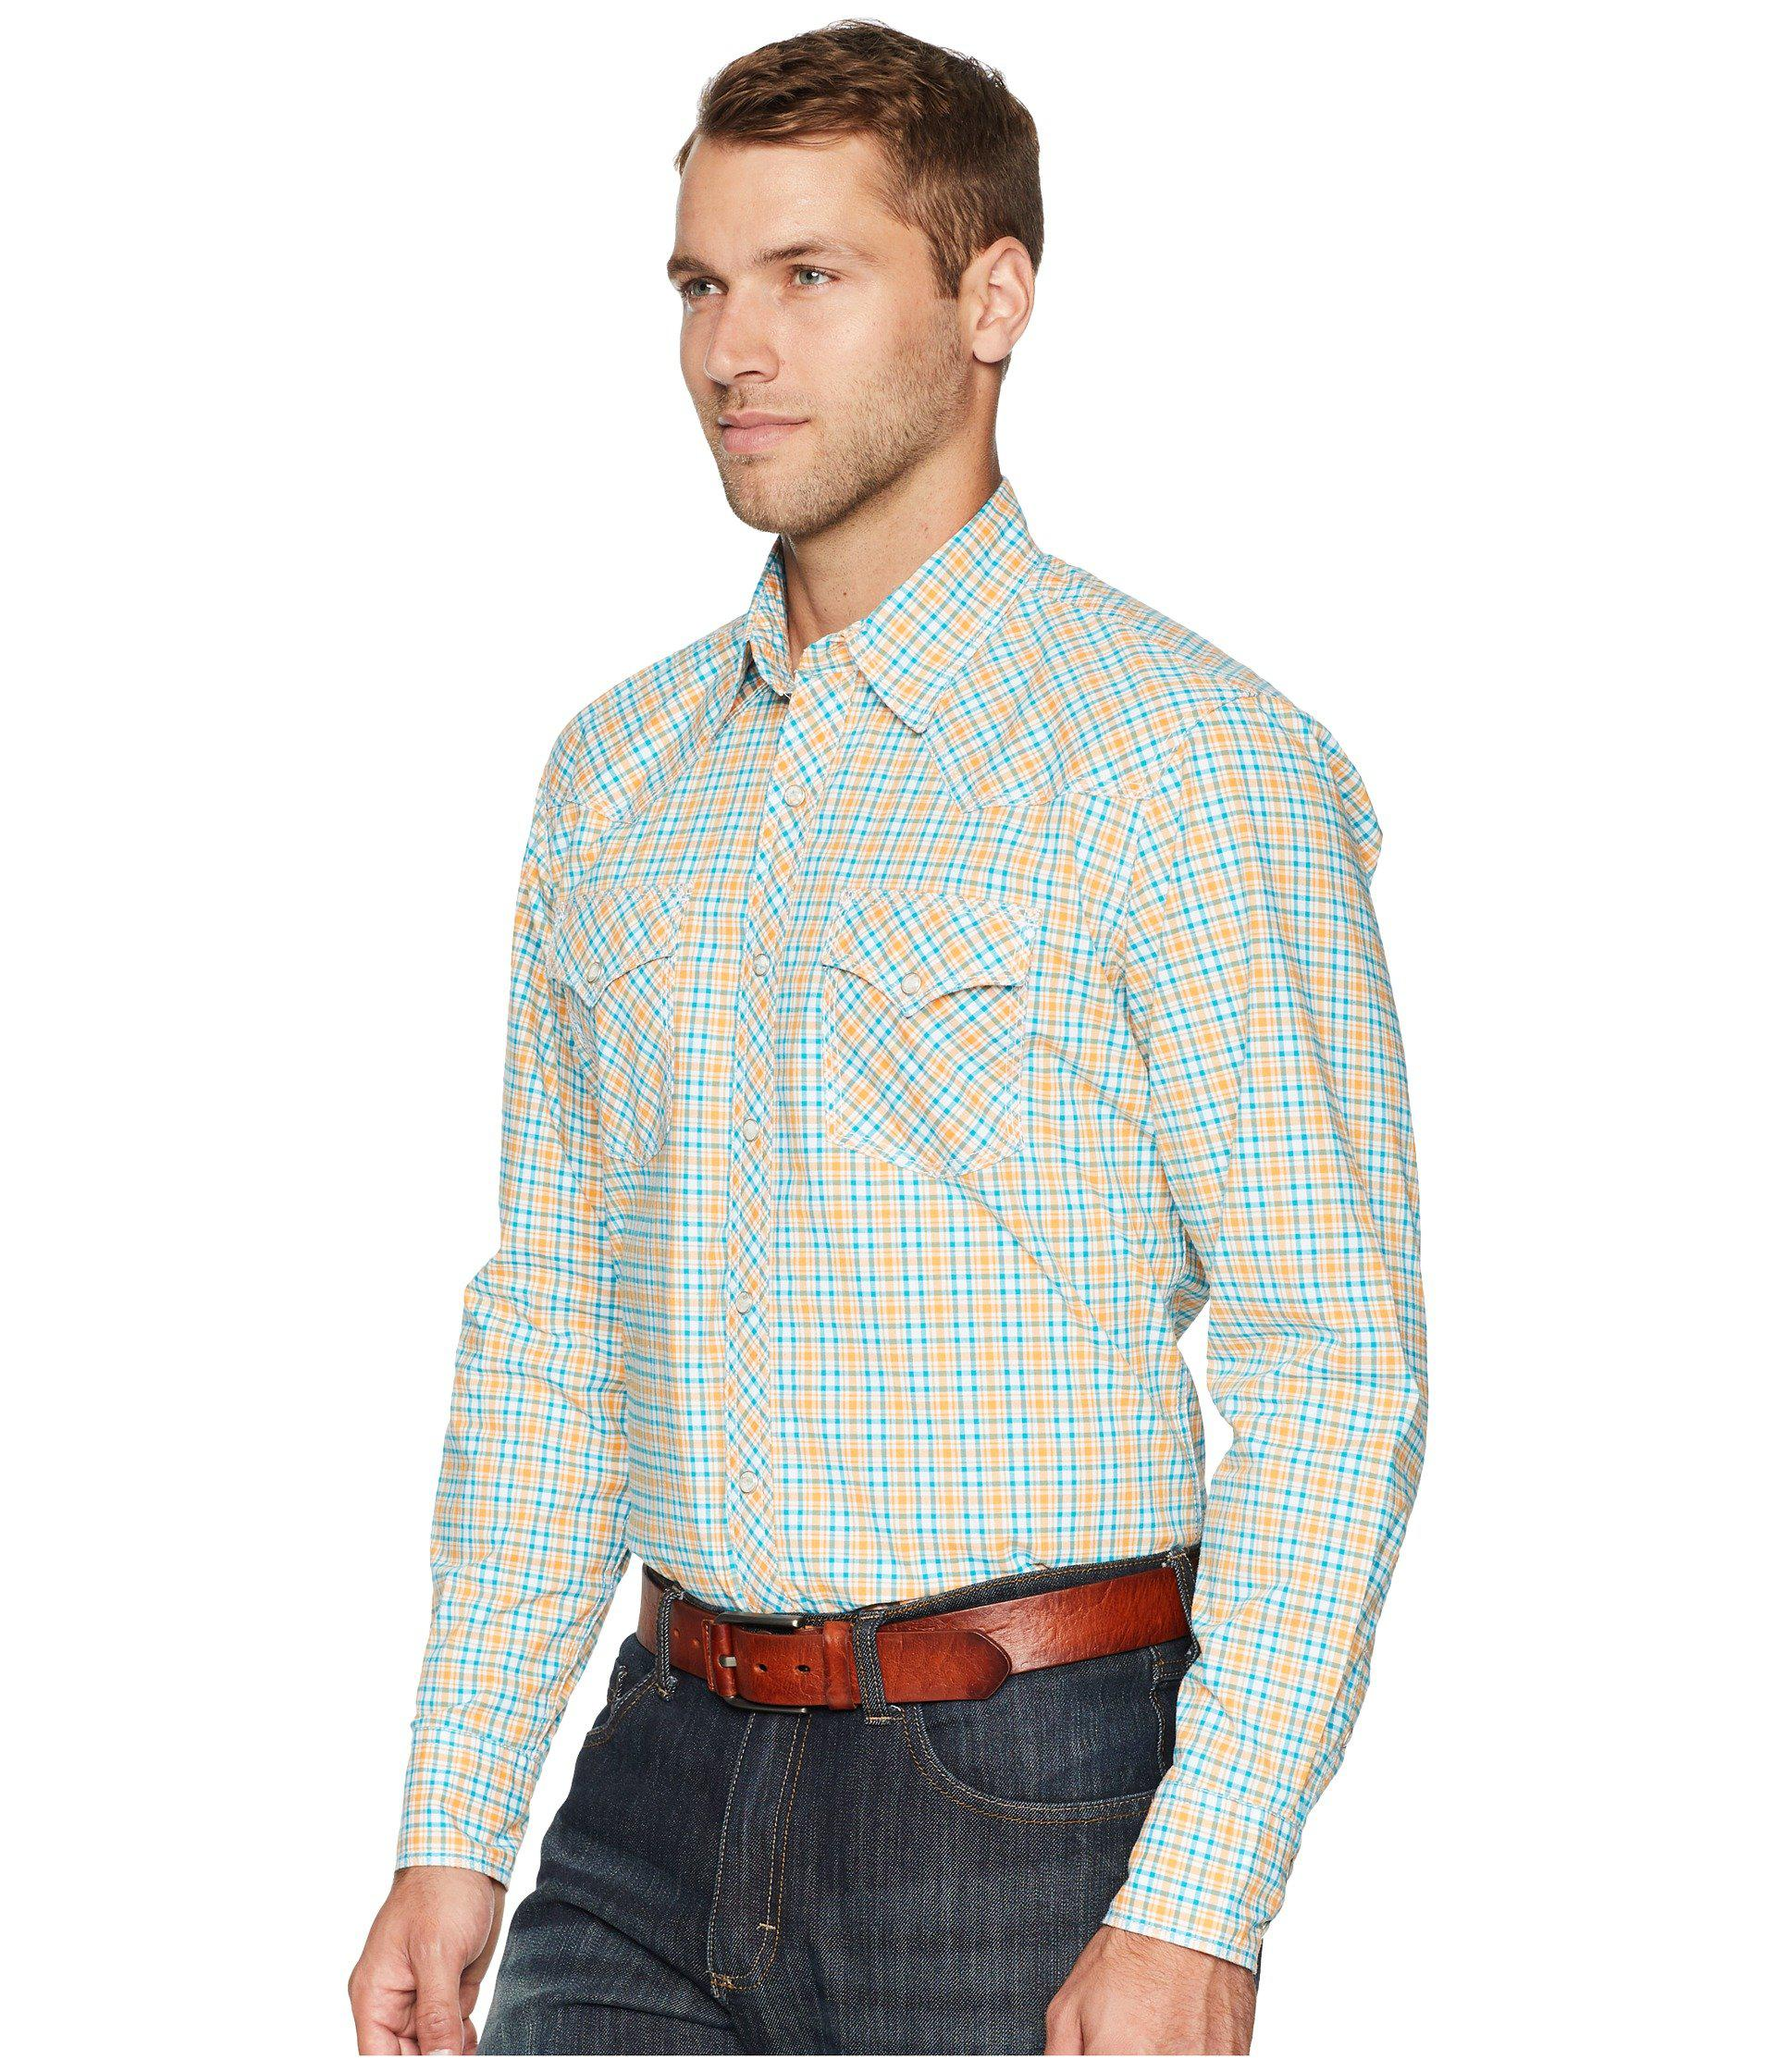 a724efe404eac Lyst - Wrangler 20x Long Sleeve Two-pocket Competition Ac Snap Plaid  (orange turquoise) Men s Long Sleeve Button Up for Men